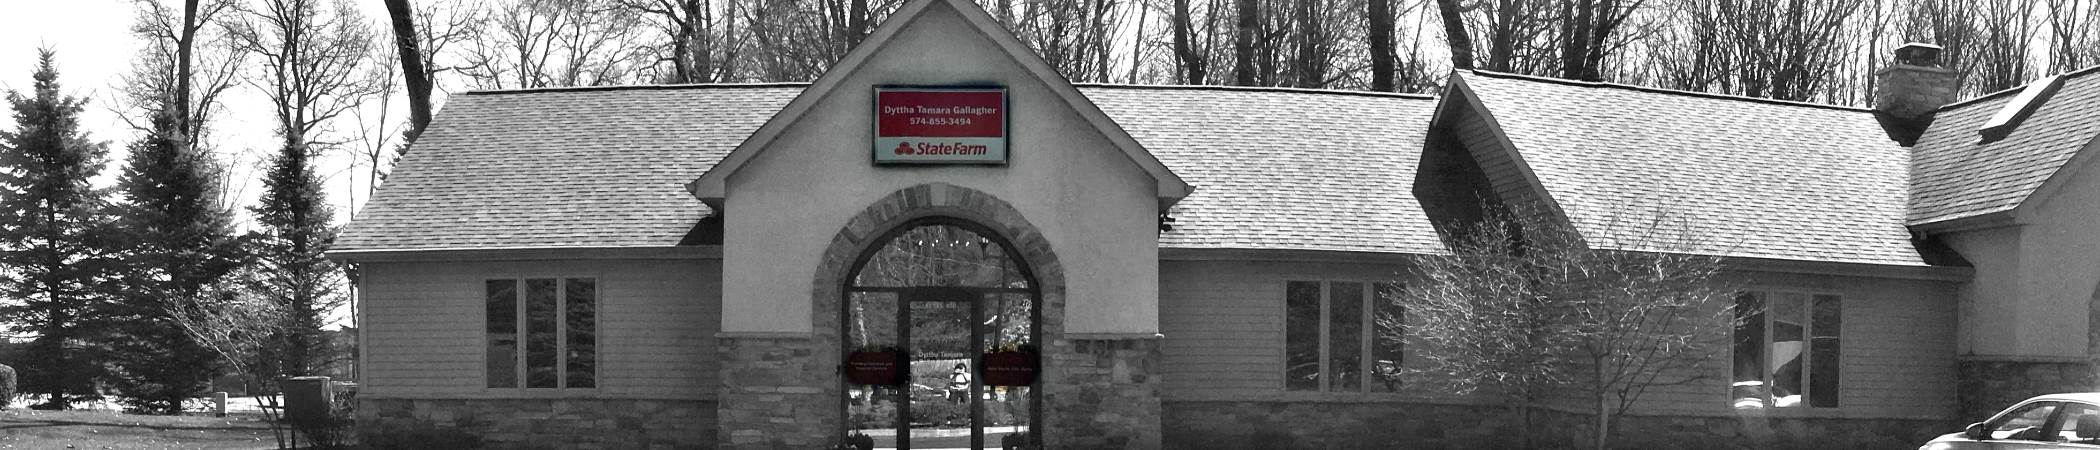 Dyttha Gallagher State Farm Insurance in Granger, IN | Home, Auto Insurance & more